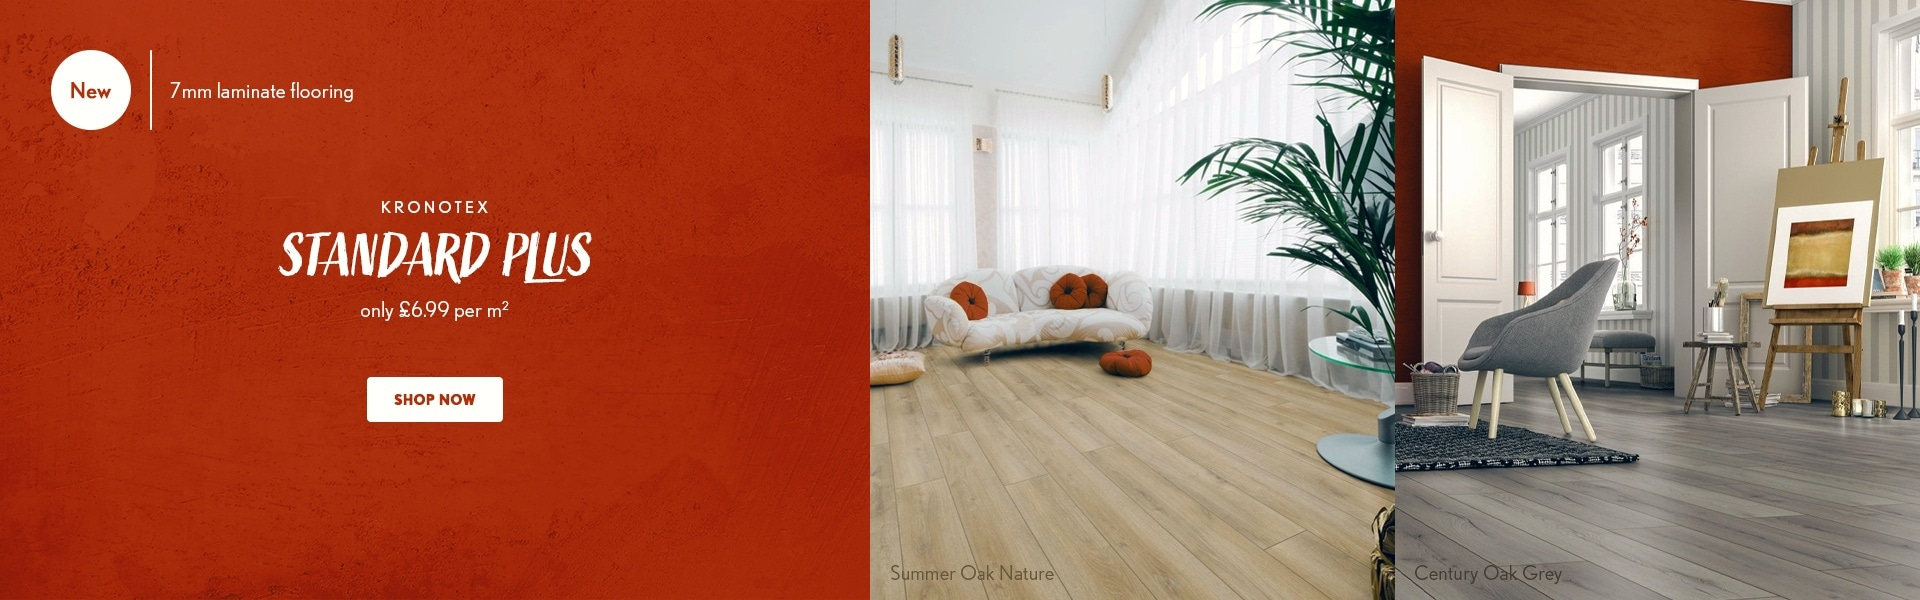 Standard Plus collection - 7mm Laminate flooring